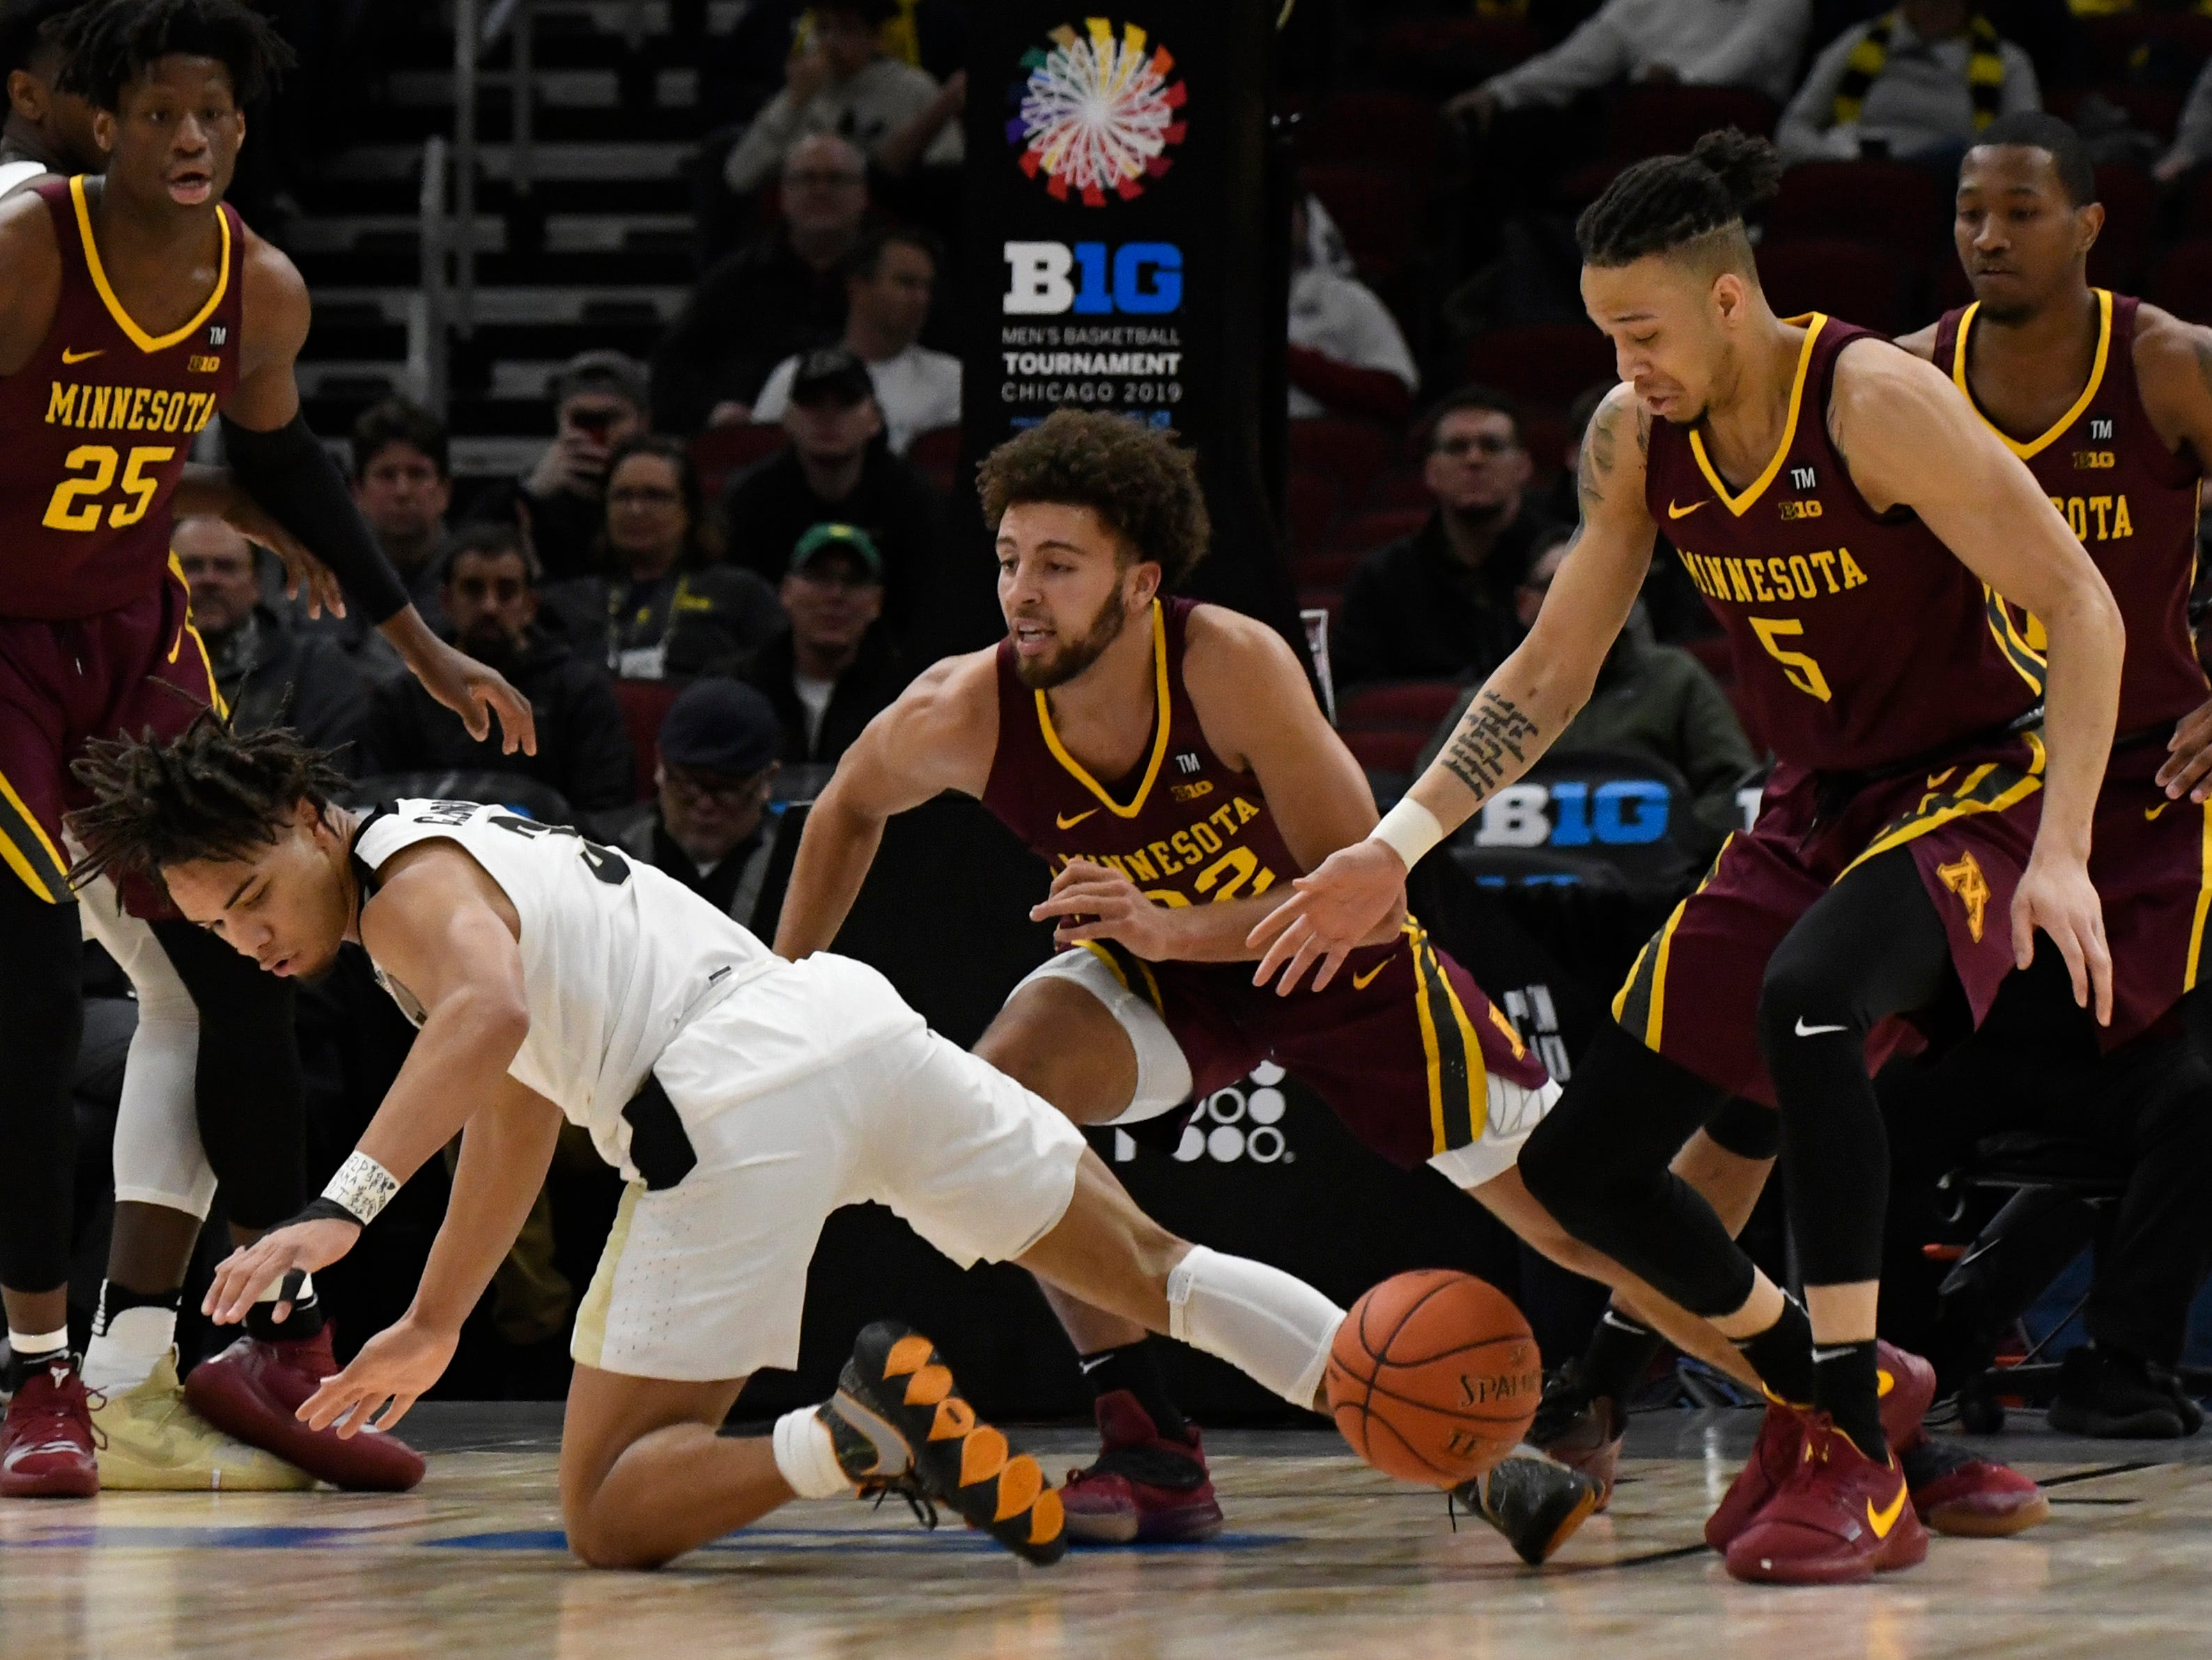 Mar 15, 2019; Chicago, IL, USA; Purdue Boilermakers guard Carsen Edwards (3) and Minnesota Golden Gophers guard Gabe Kalscheur (22) and guard Amir Coffey (5) chase a loose ball during the first half in the Big Ten conference tournament at United Center. Mandatory Credit: David Banks-USA TODAY Sports